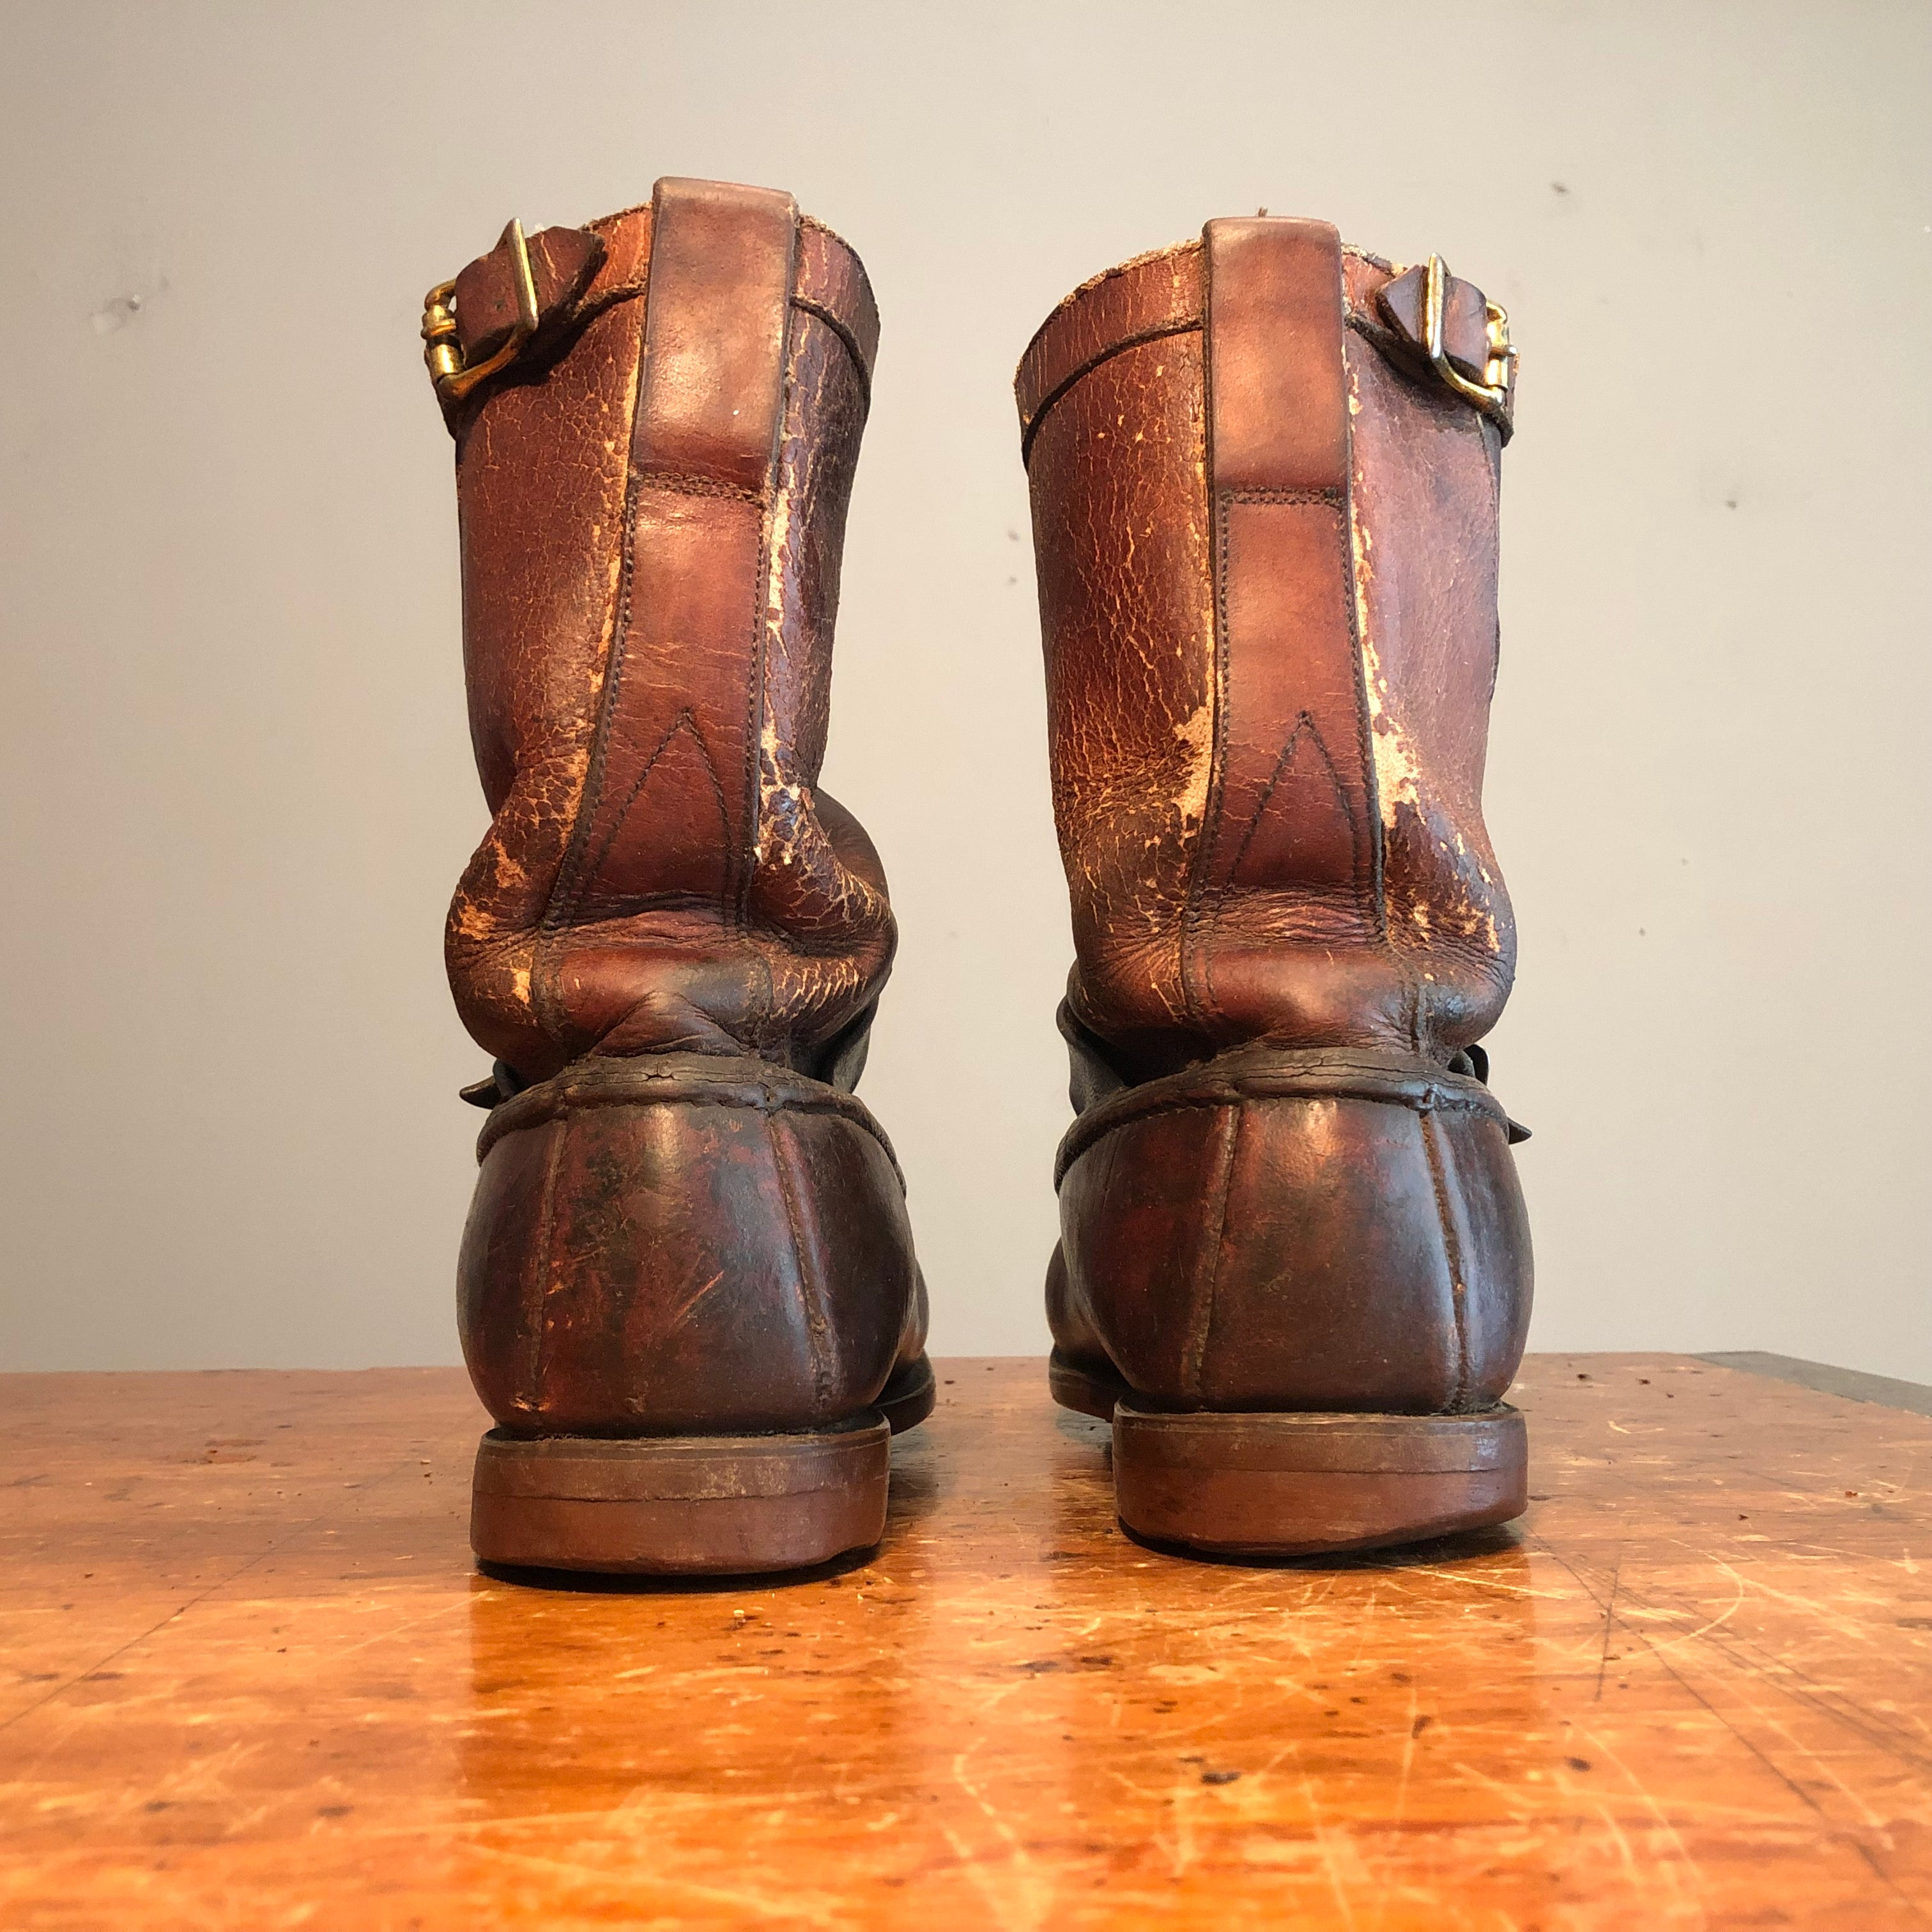 50s Gokeys Botte Sauvage Leather Boots | Size 10.5?